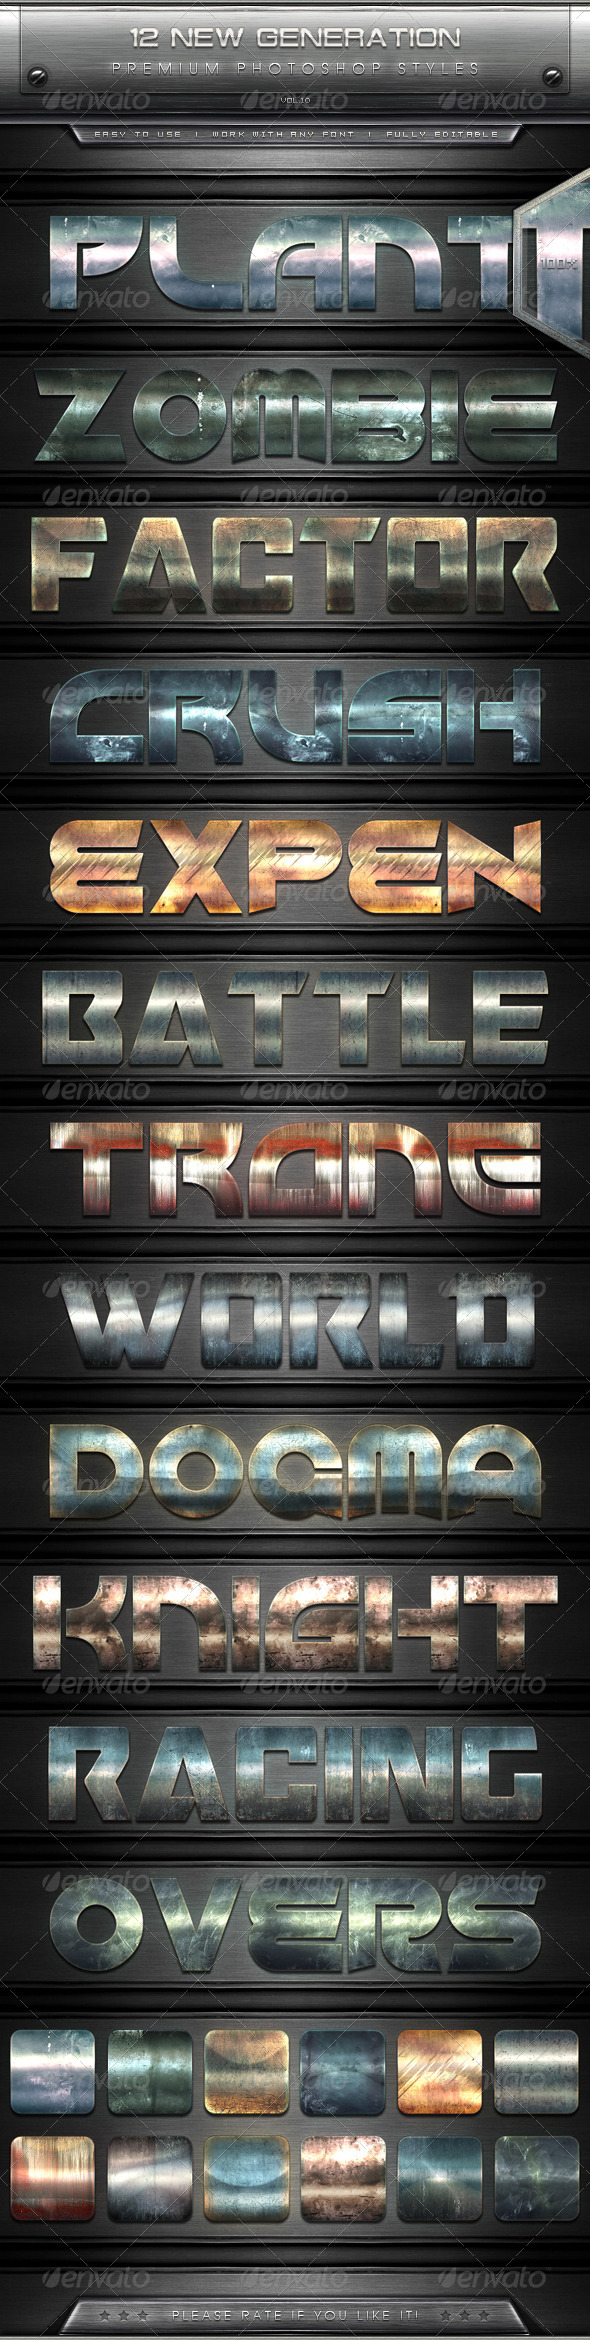 GraphicRiver 12 New Generation Text Effect Styles Vol.10 7822412